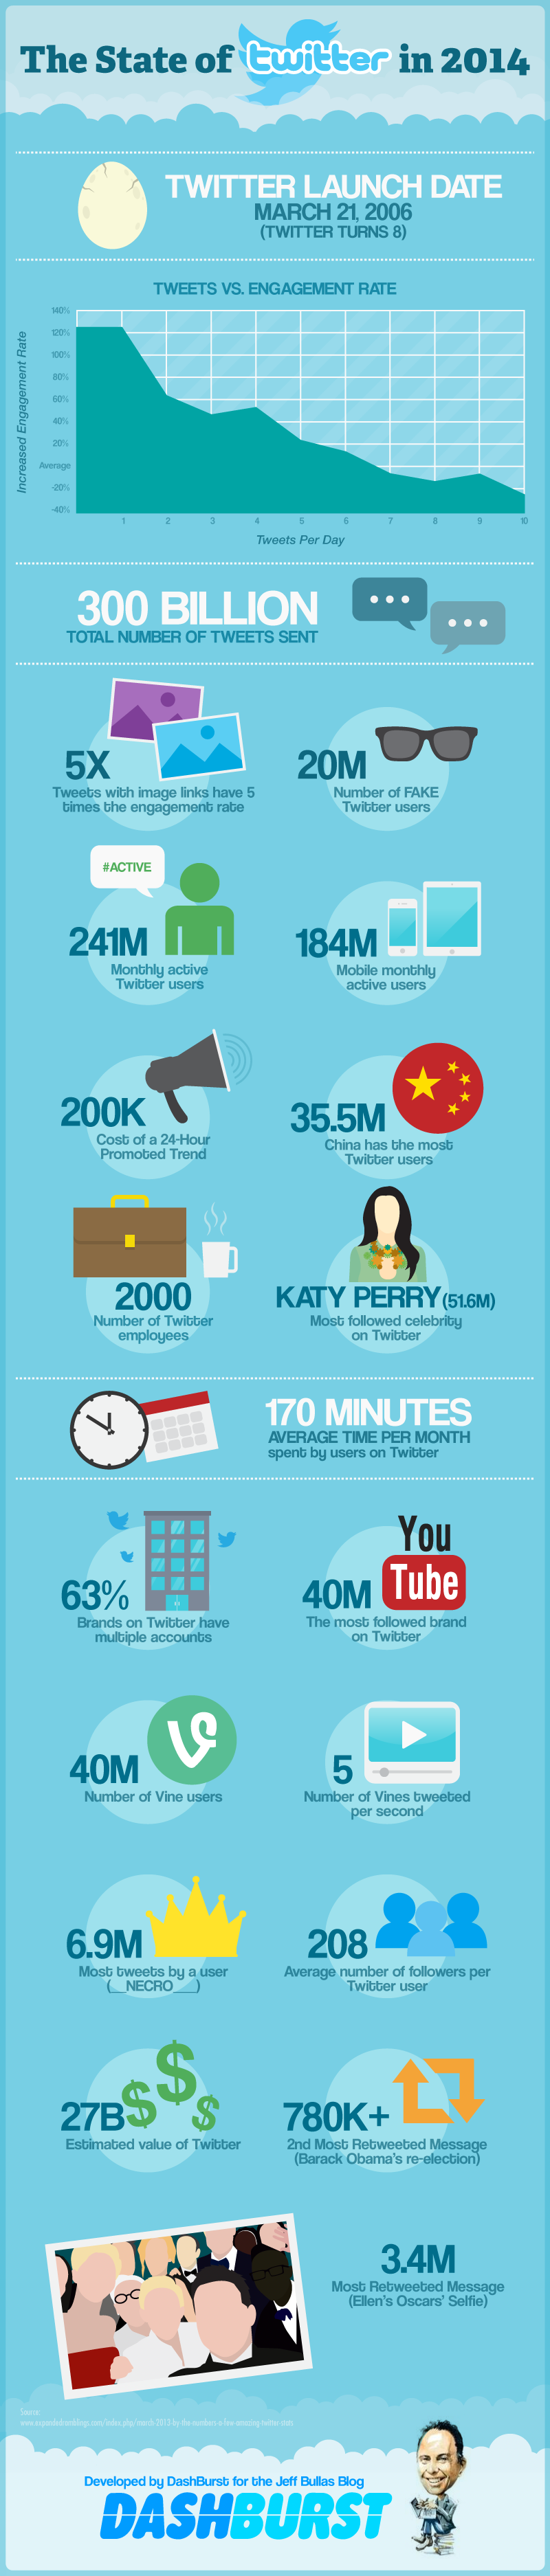 Twitter Facts and Figures 2014